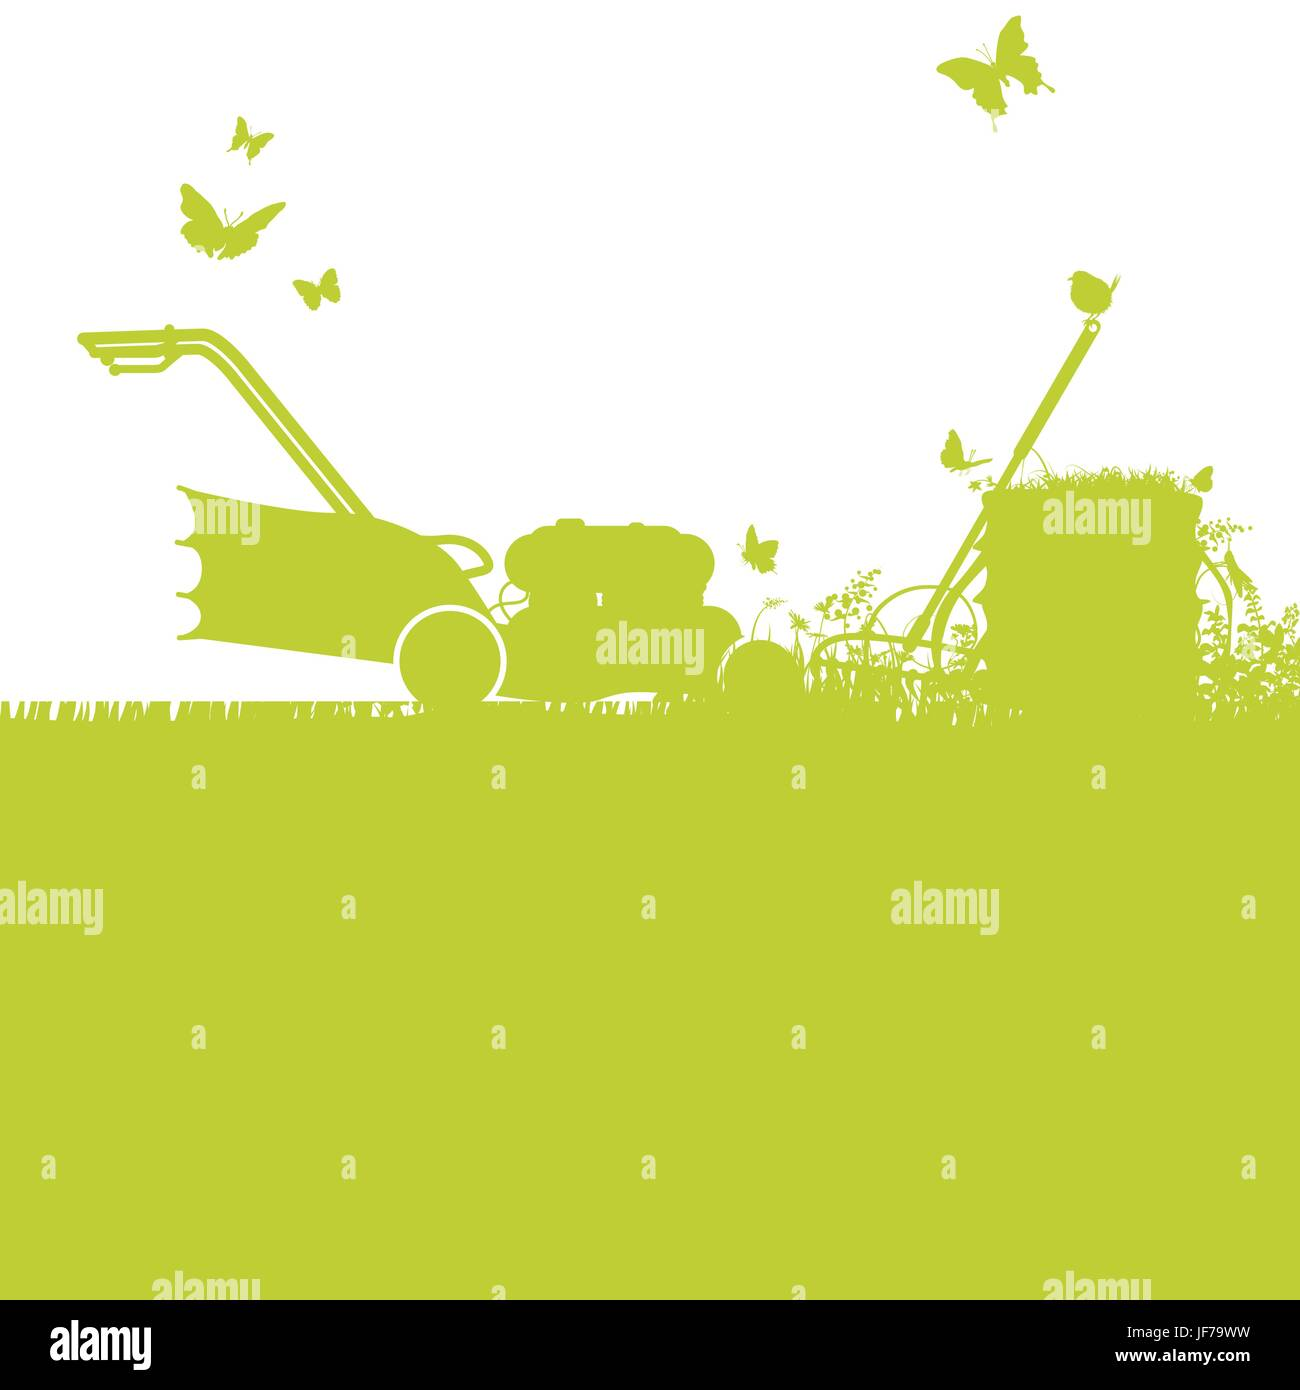 lawn mowers and gardening - Stock Vector